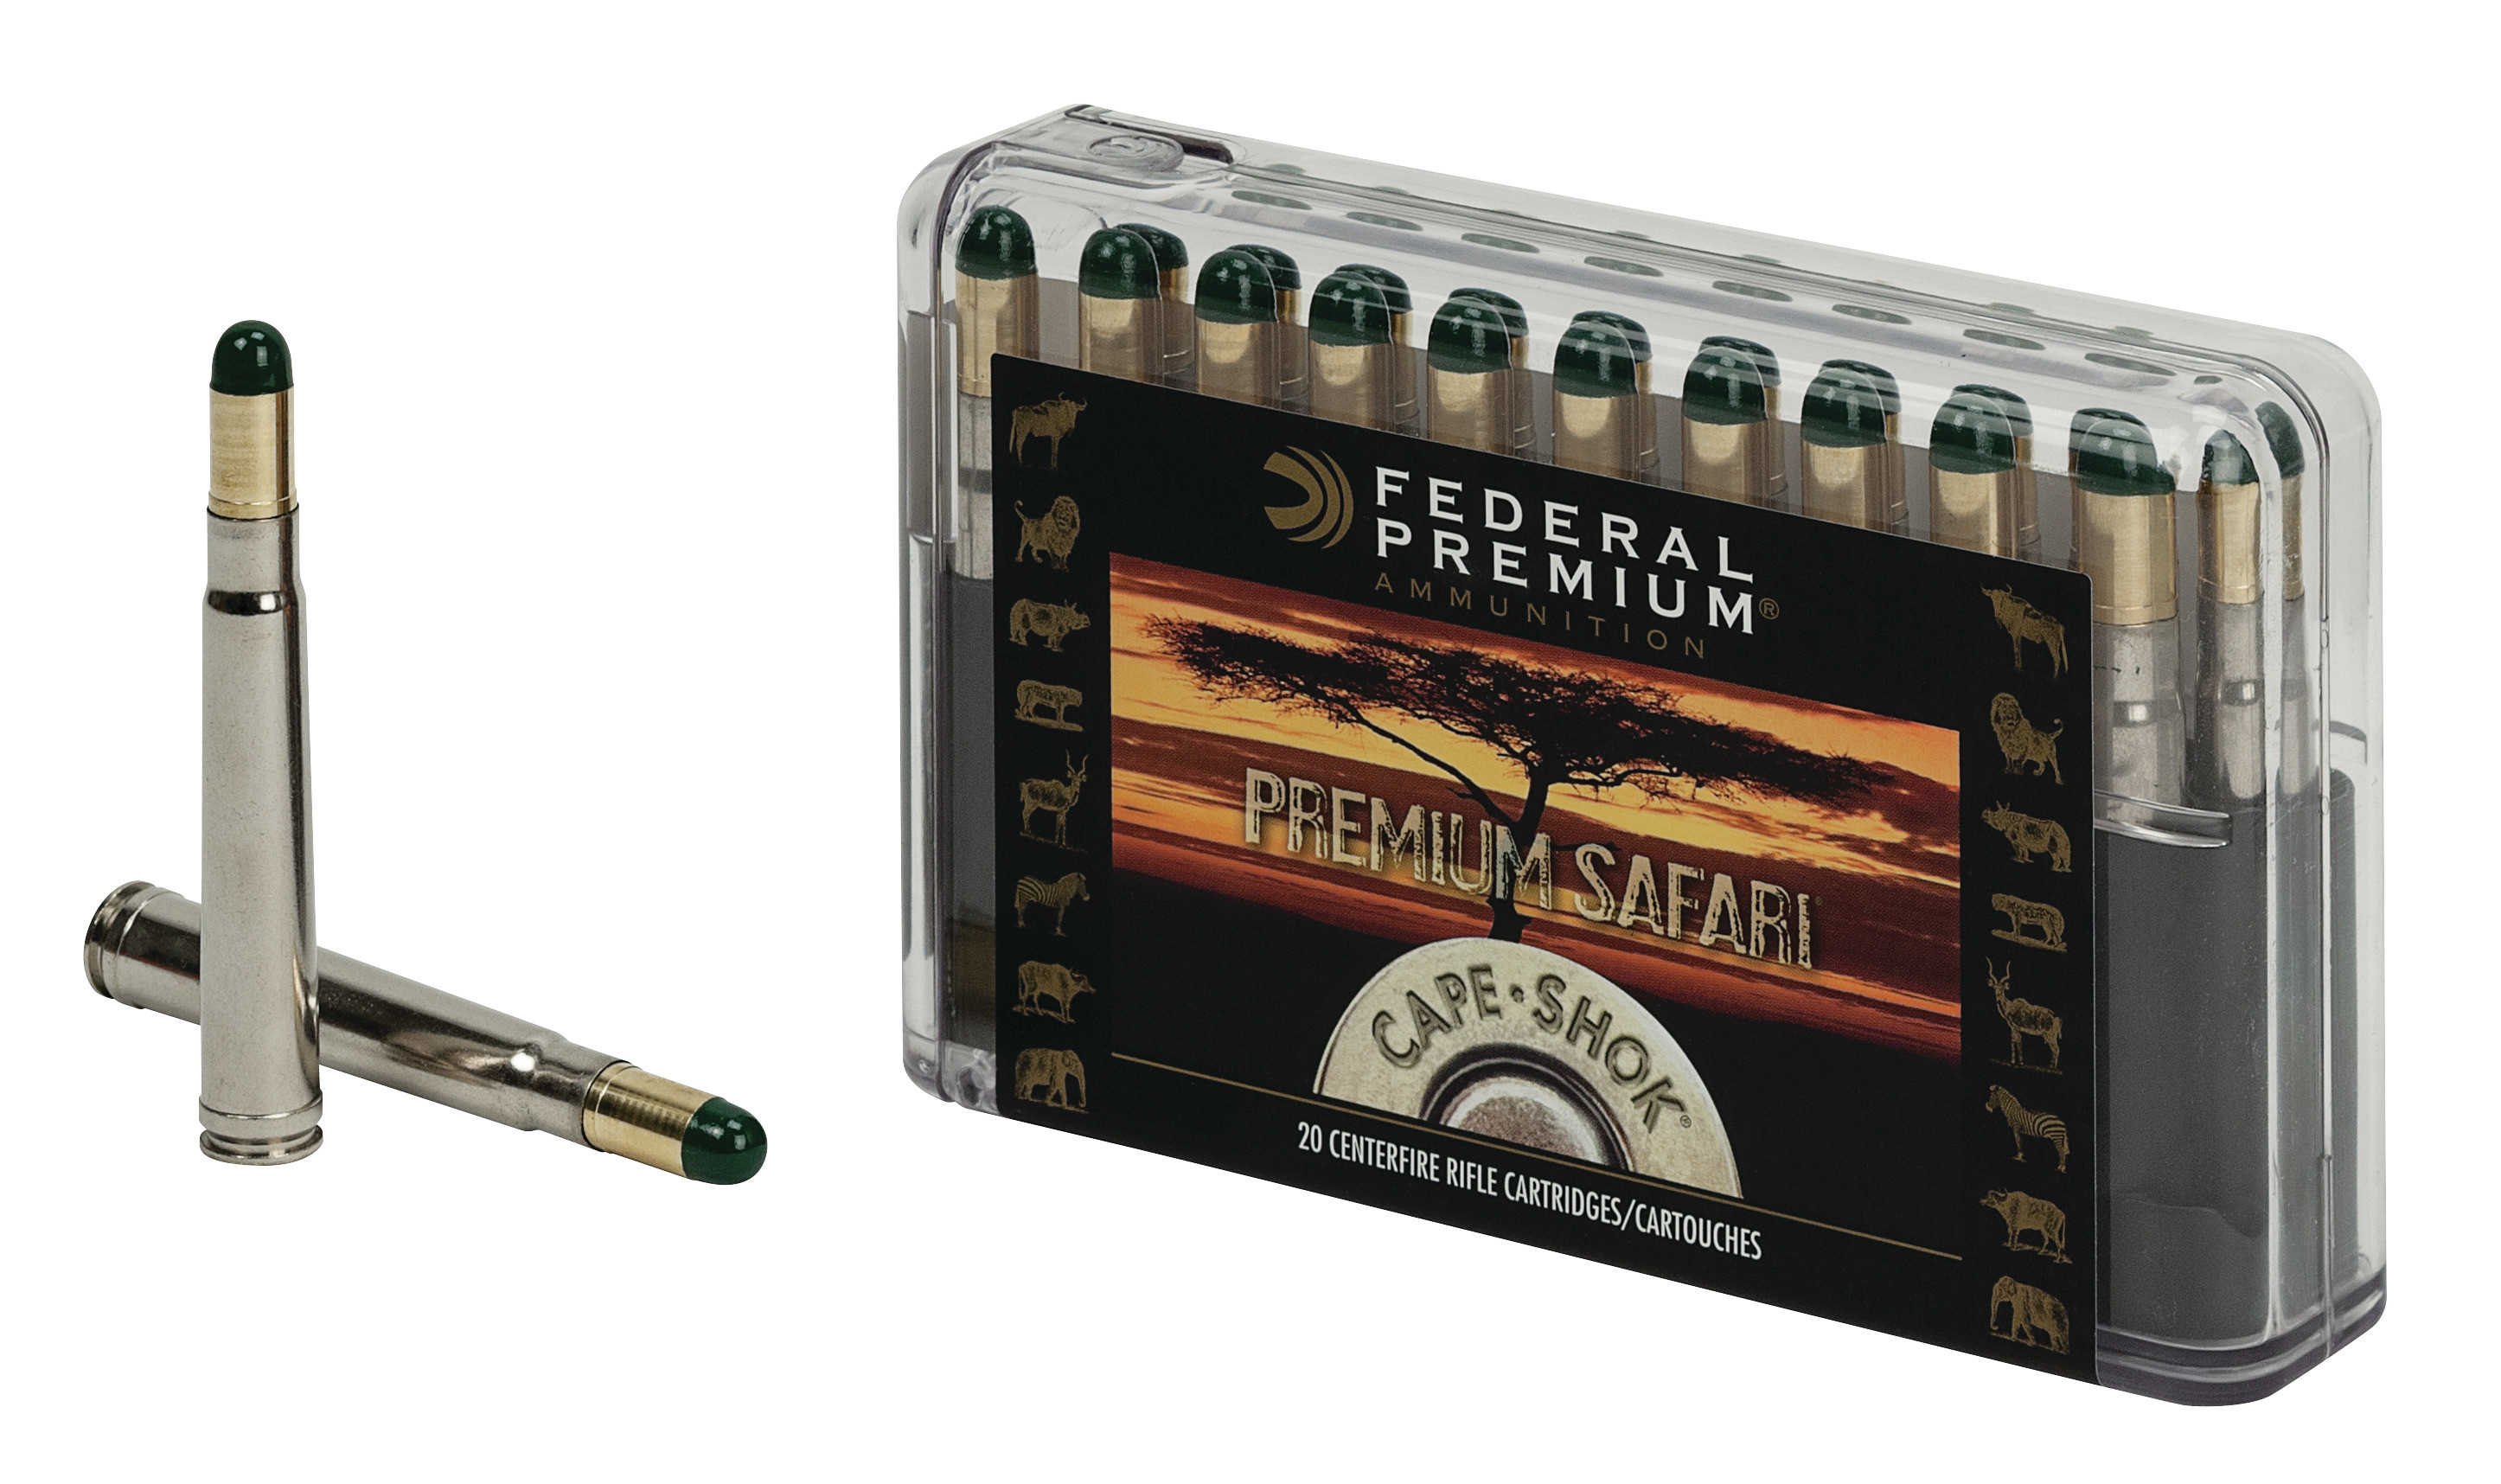 Federal Premium Cape-Shok Ammunition 9.3x62mm Mauser 286GR Woodleigh Hydro Solid Round Nose Per 20